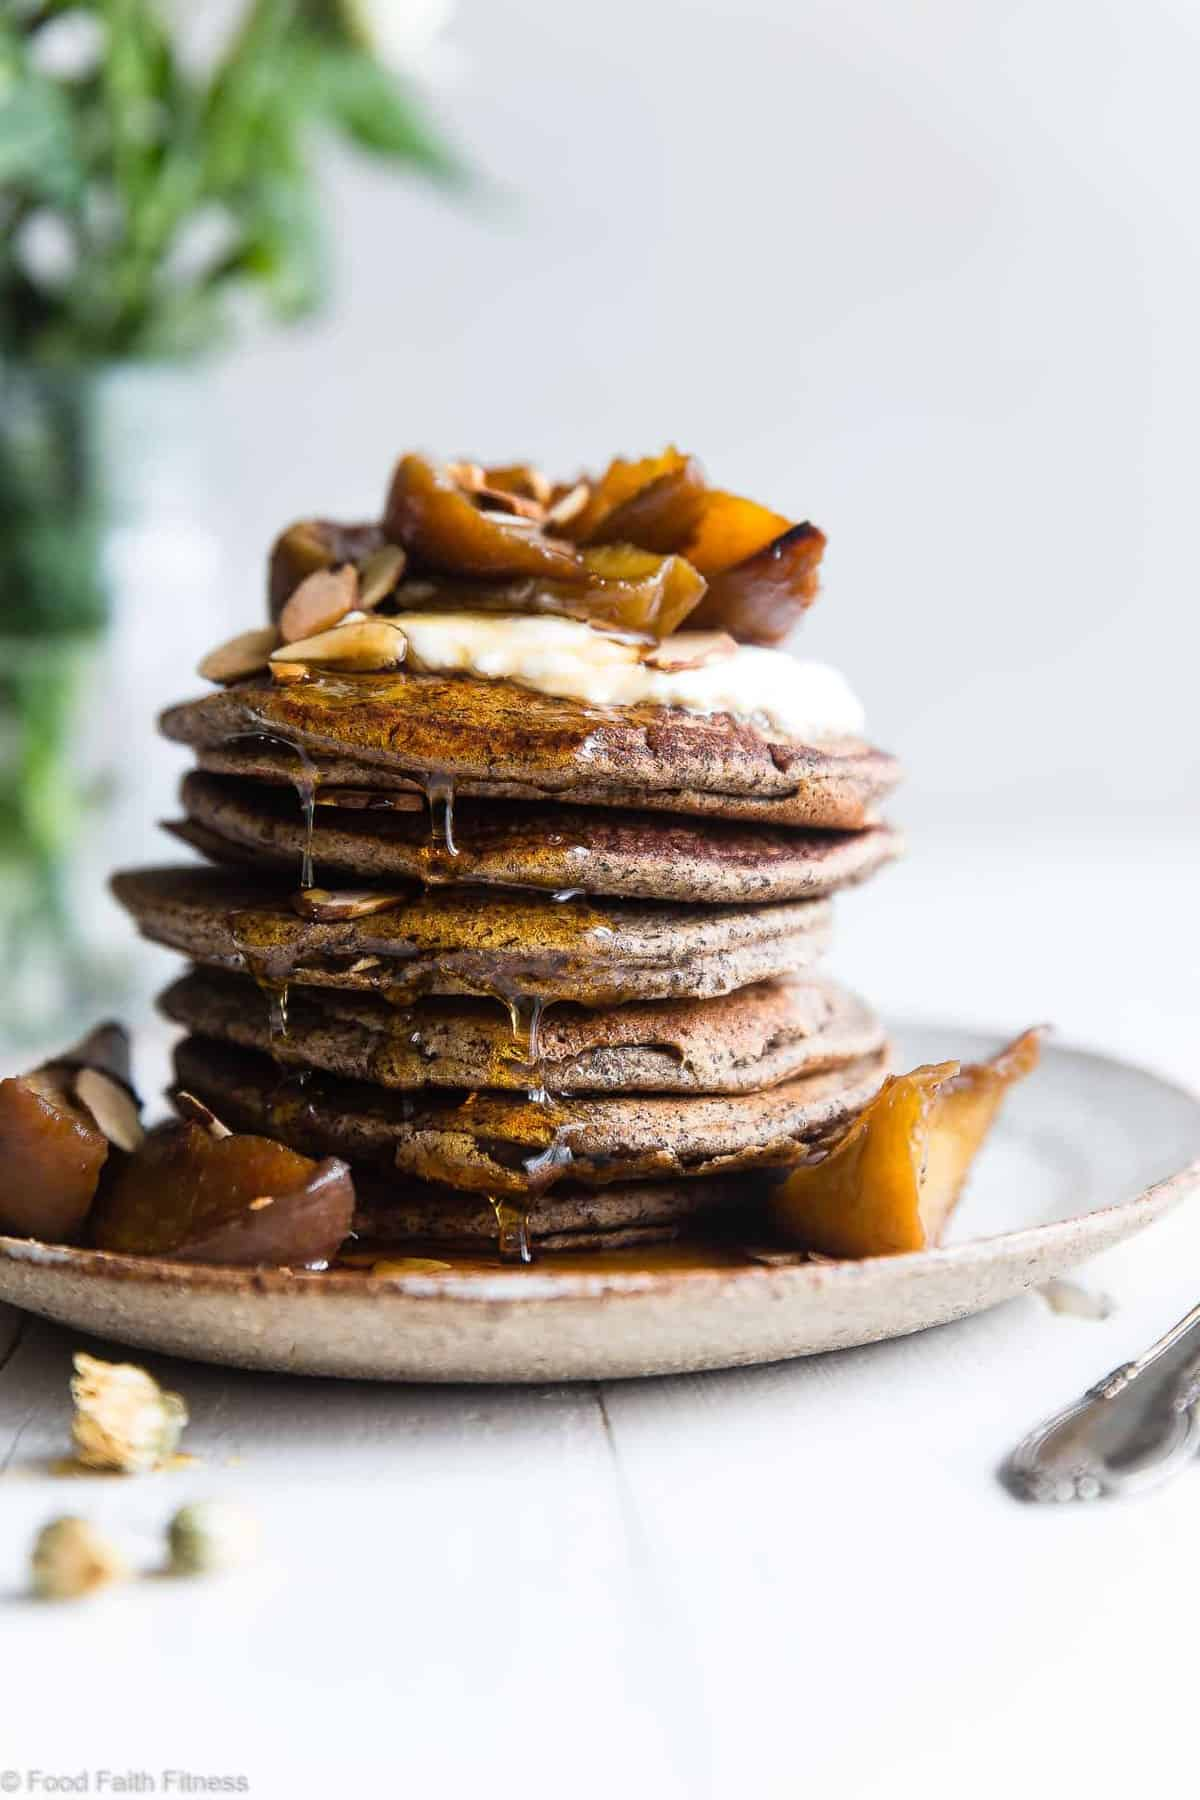 Healthy Gluten Free Buckwheat Pancakes with Roasted Peaches - SO light and fluffy that you'll never believe they're healthy, gluten free and only 170 calories a serving!  The perfect spring or summer brunch! | #Foodfaithfitness | #Glutenfree #DairyFree #Healthy #Breakfast #Pancakes